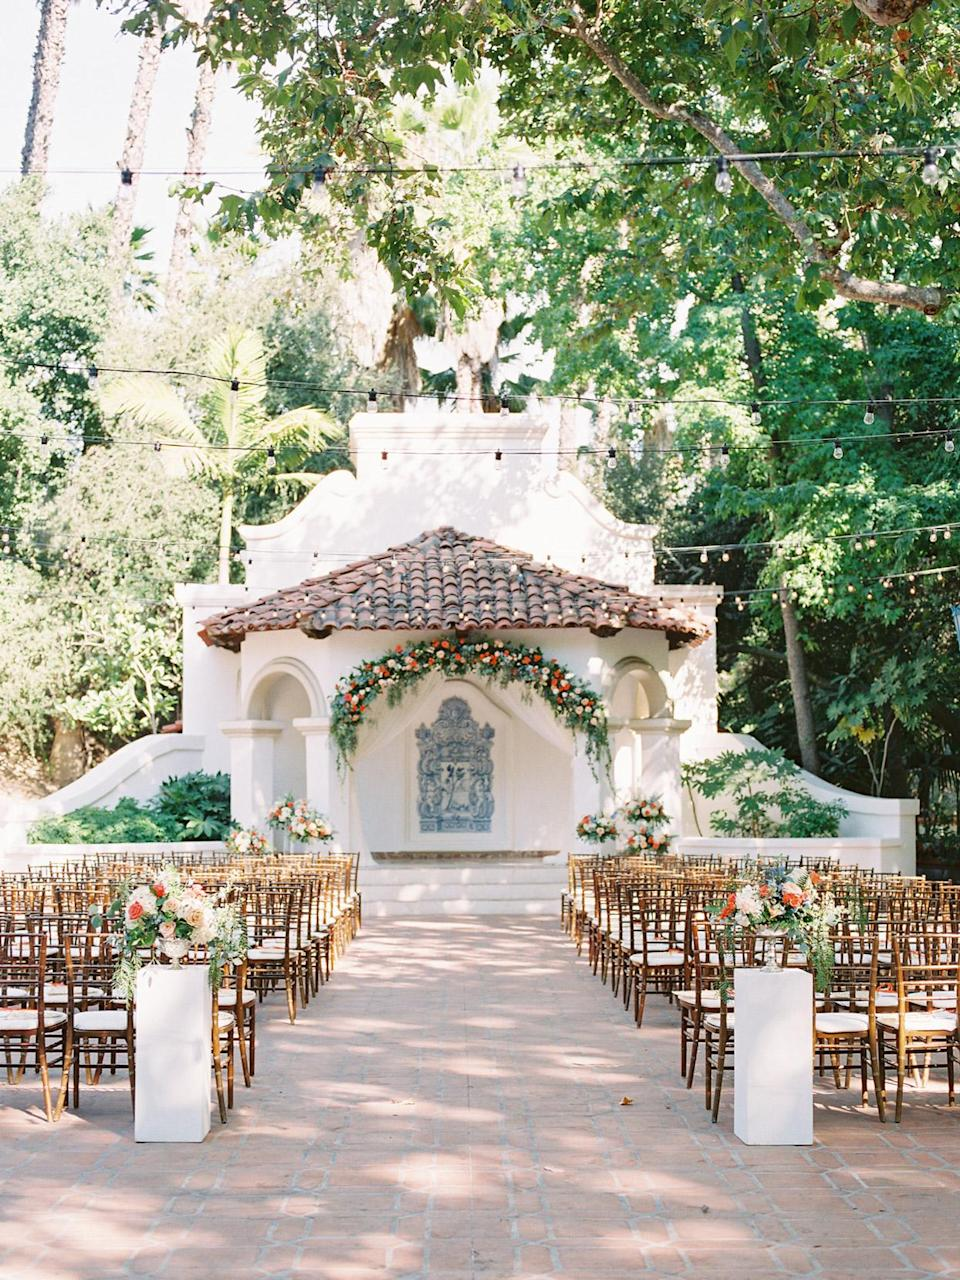 <p>The venue's El Teatro—the open-air theater—served as the site of the duo's vow exchange. A large statement floral installation lined the arch of the altar, which was draped in white silk. Wooden Chiavari chairs defined the space, nodding to the tree canopy overhead; bistro lights offered a romantic touch.</p>